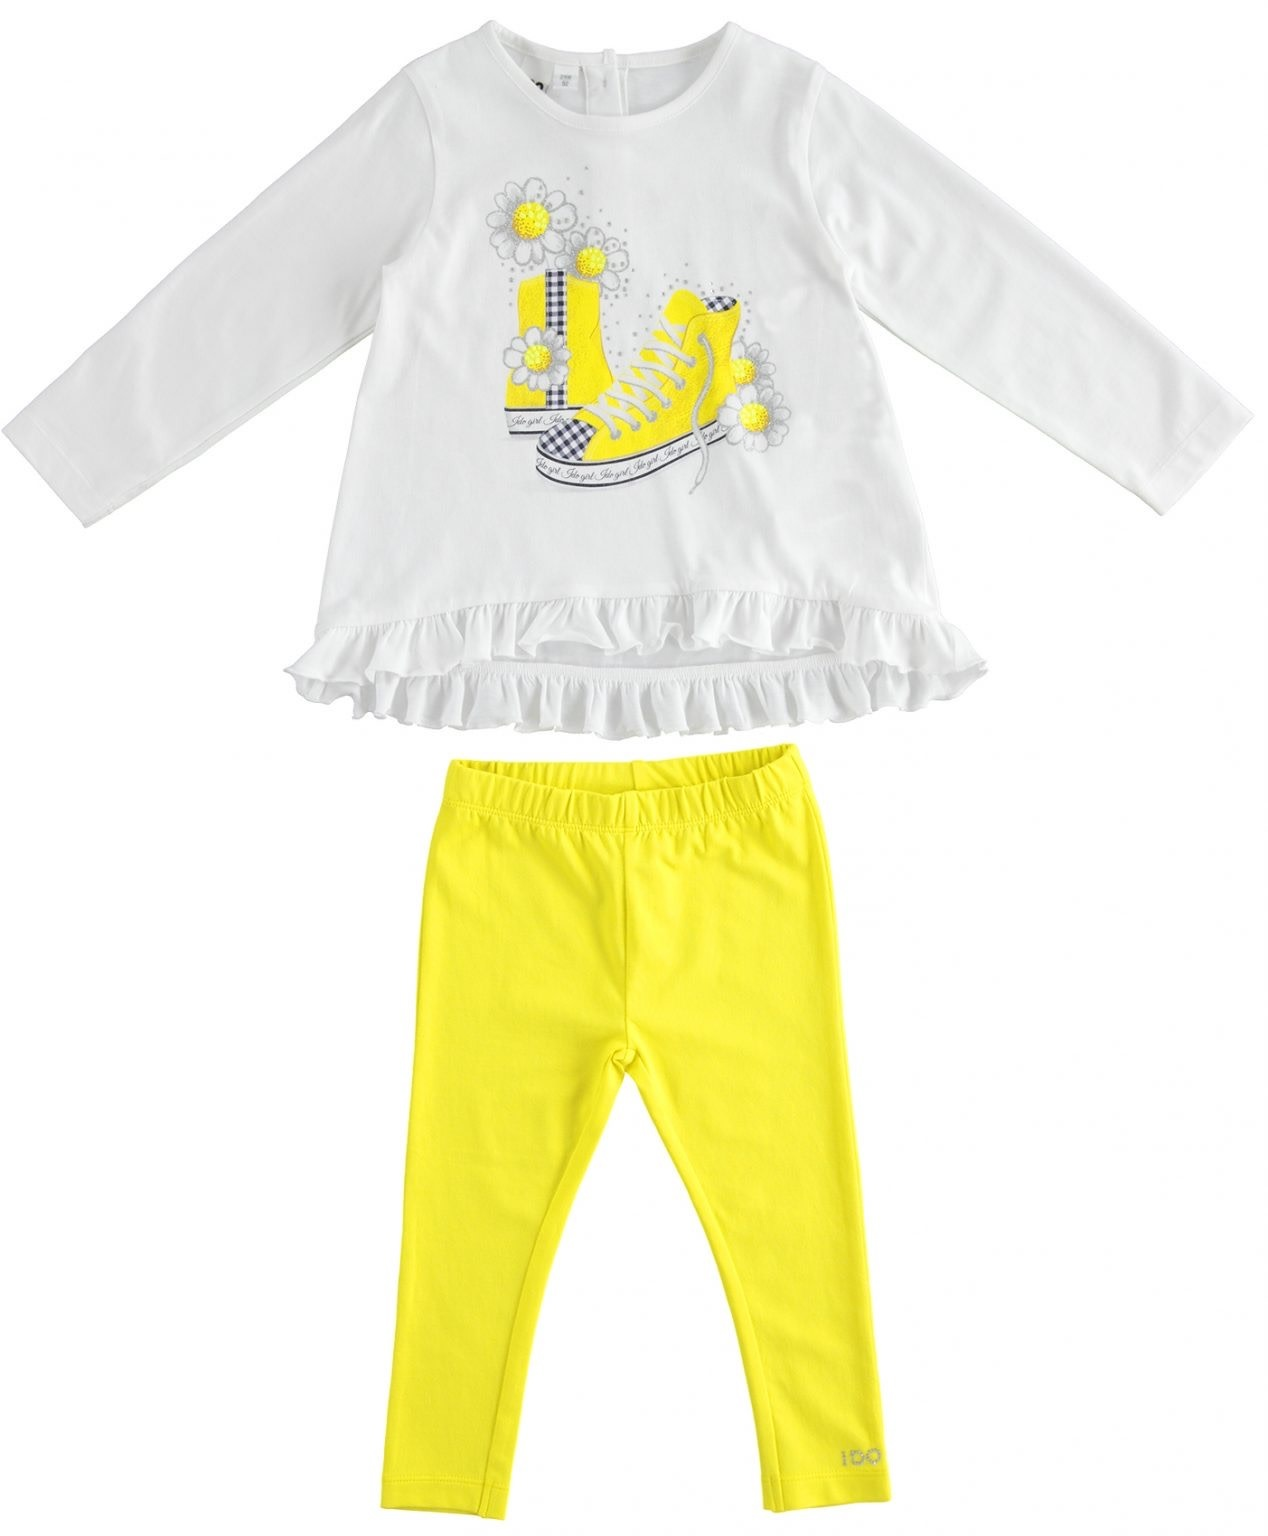 iDo iDo SS20 Girls Yellow and White Leggings Set J272